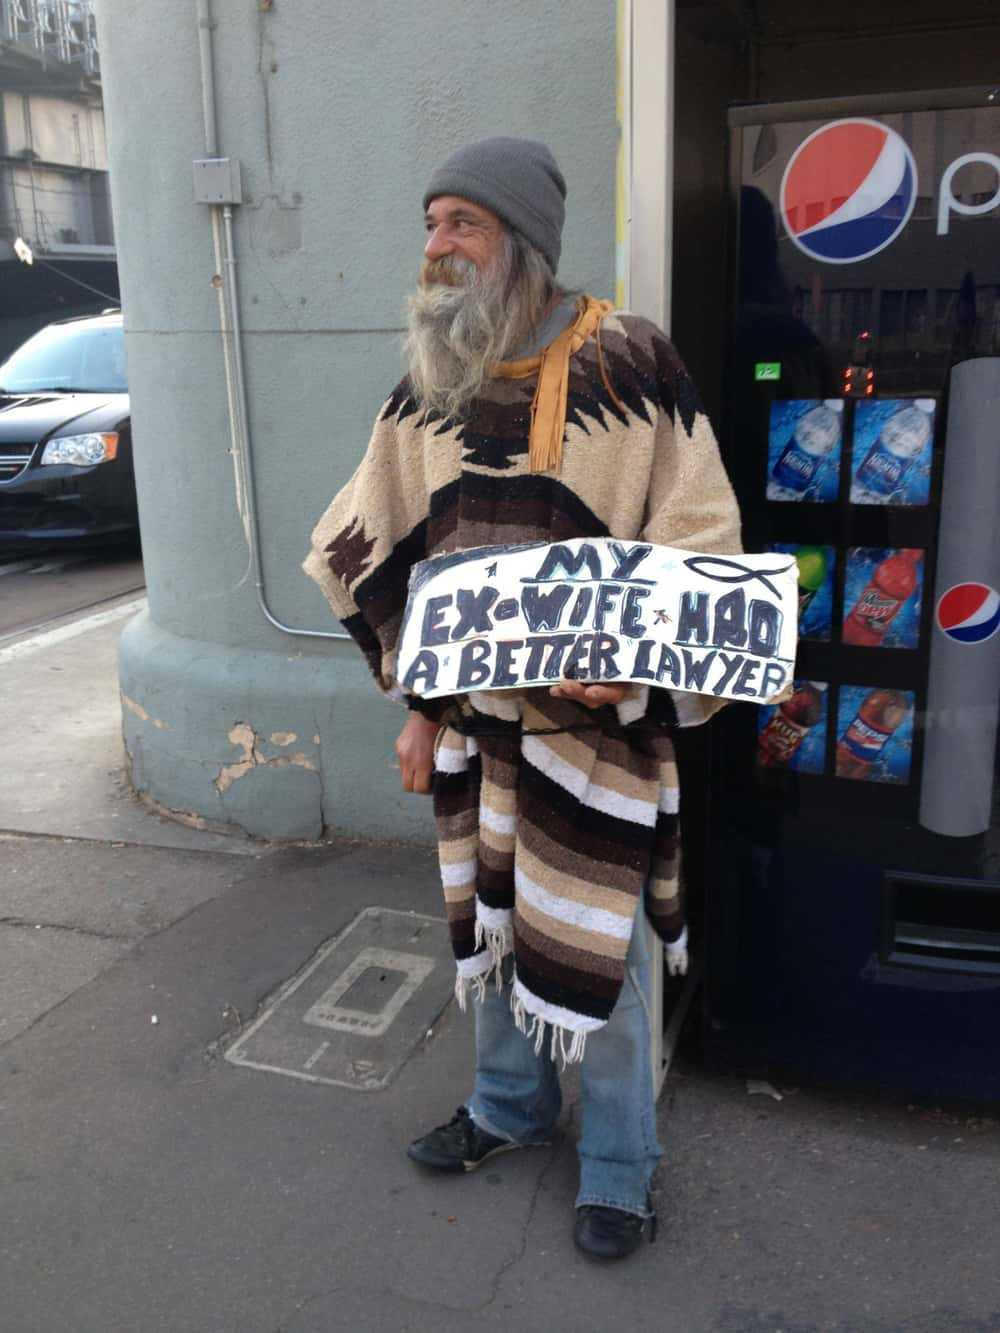 The Legal System Strikes Again is listed (or ranked) 1 on the list 34 Homeless People with the Funniest Cardboard Signs